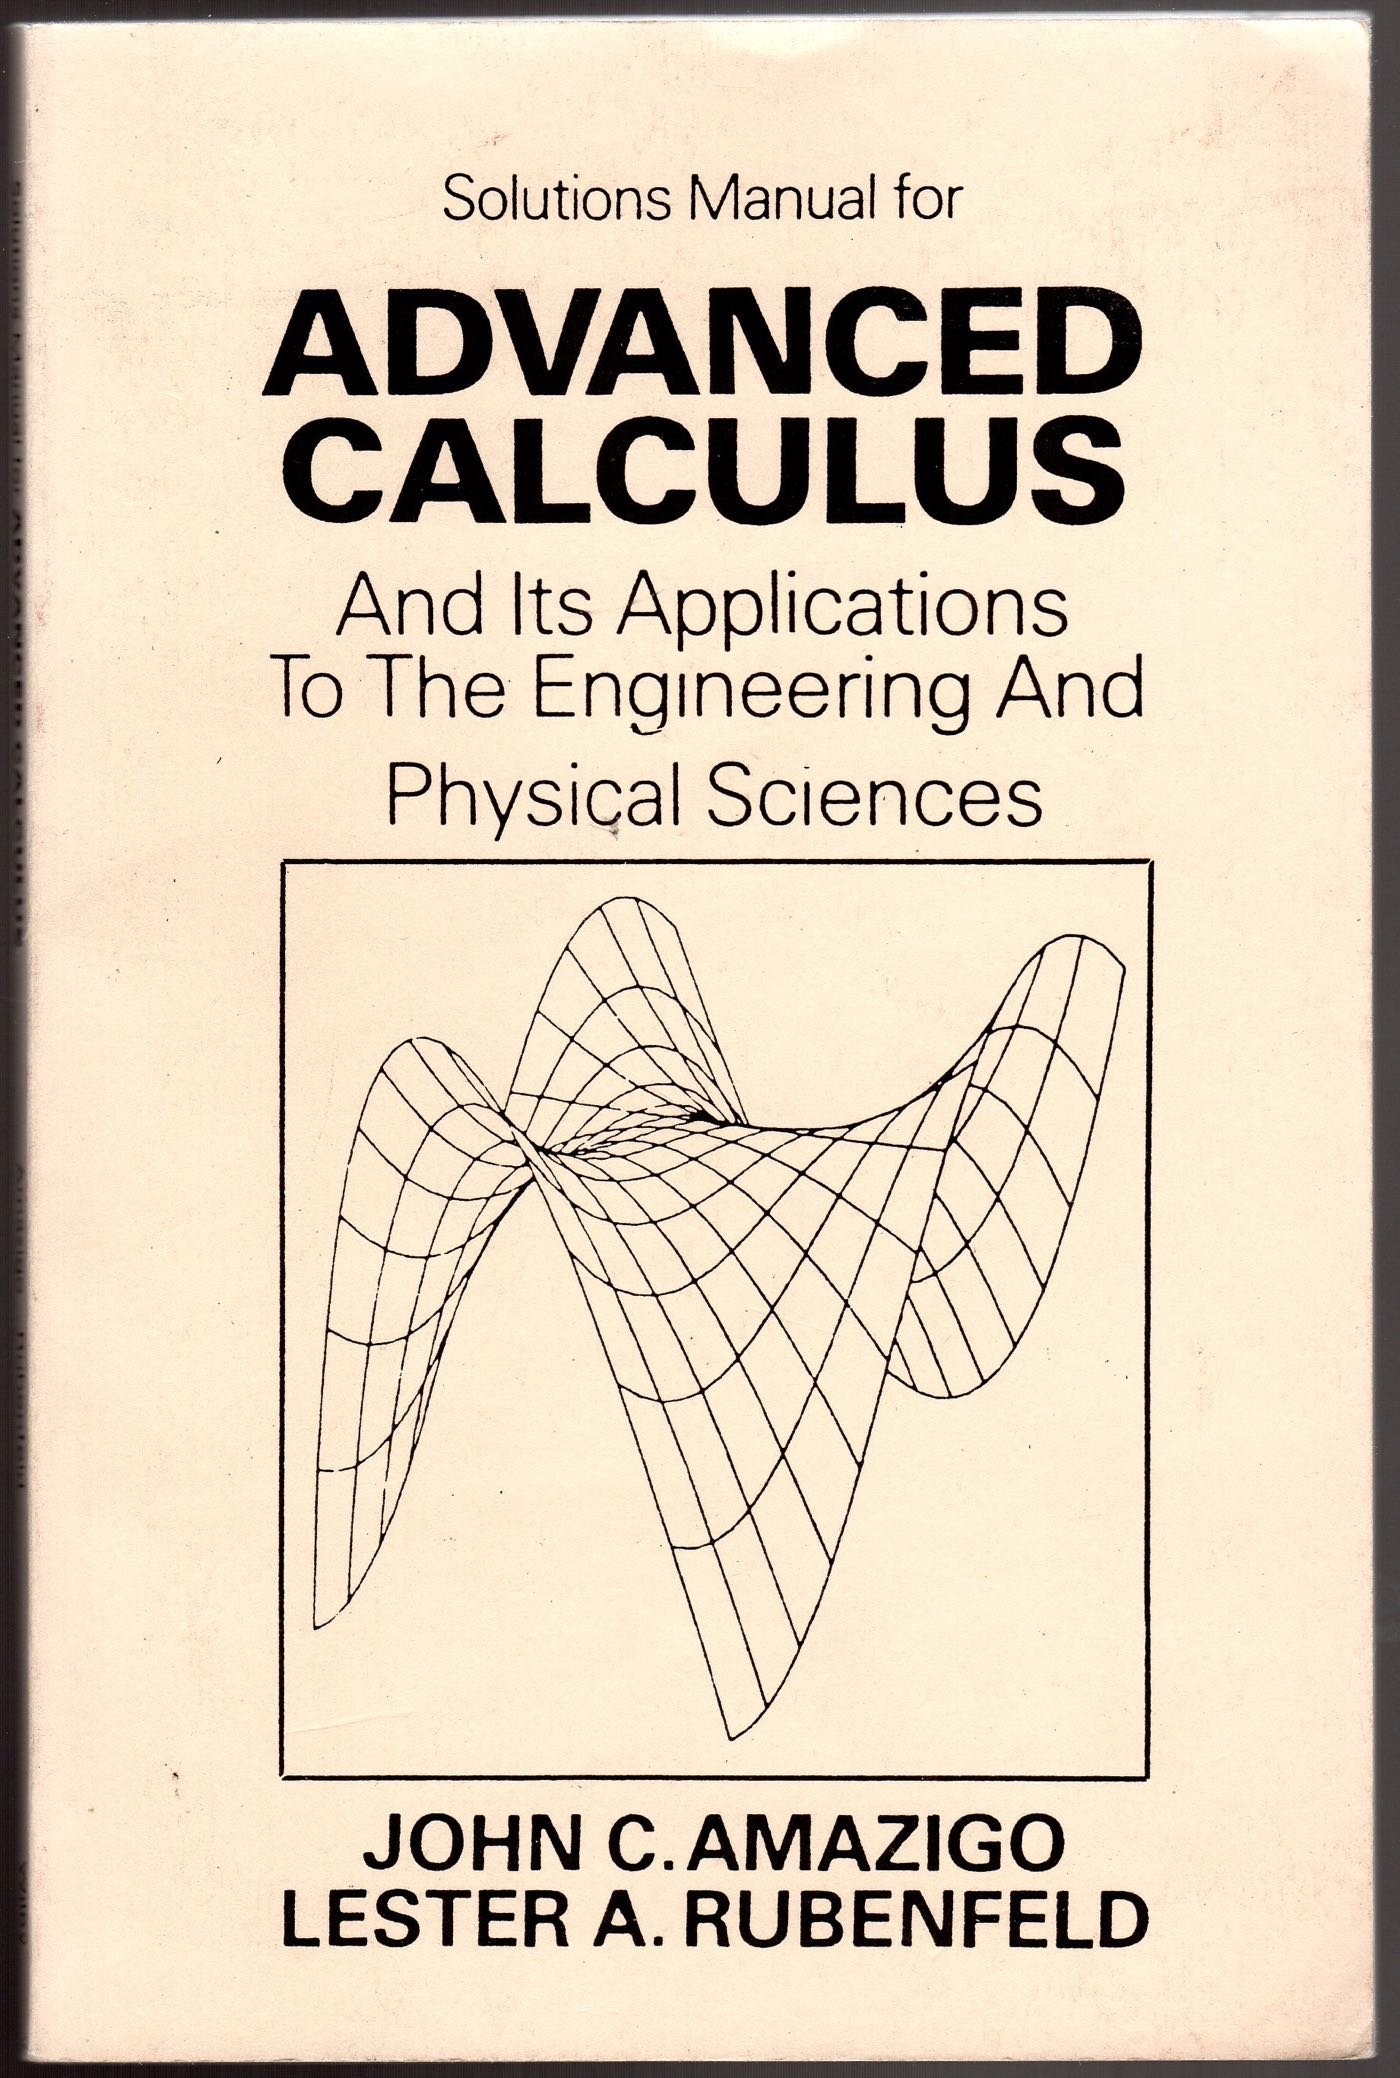 Buy Advanced Calculus and Its Applications to the Engineering and Physical  Sciences: Solutions Manual Book Online at Low Prices in India | Advanced  Calculus ...